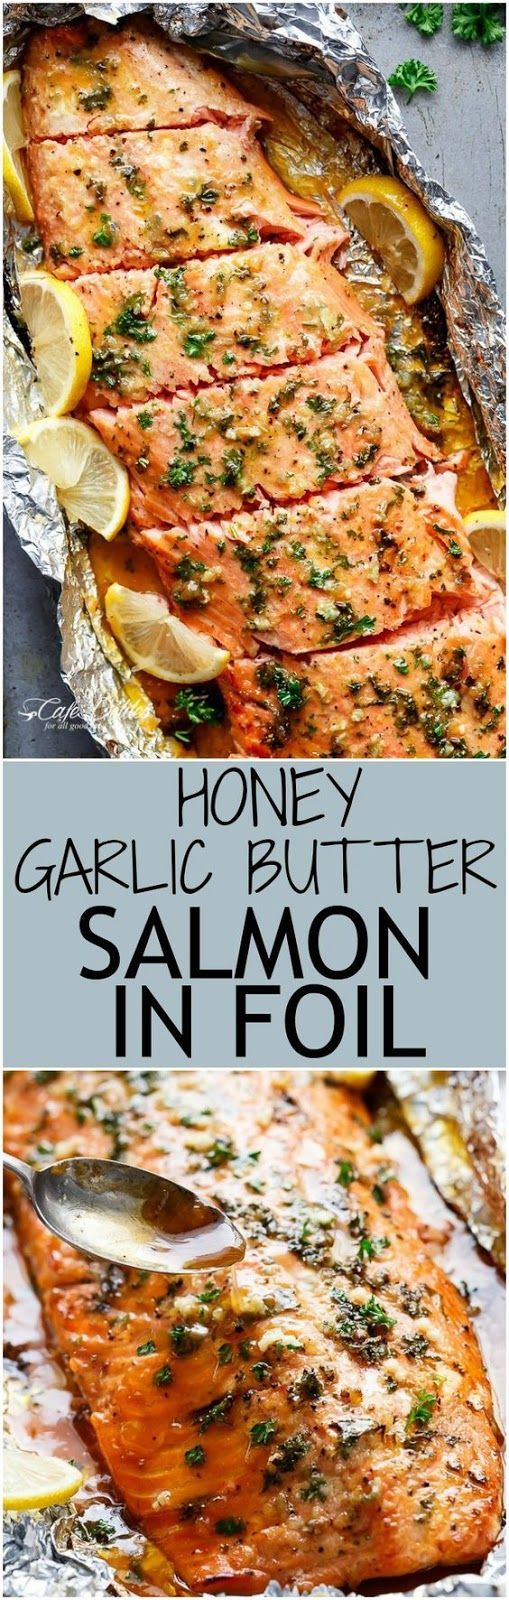 Honey Garlic Butter Salmon In Foil: